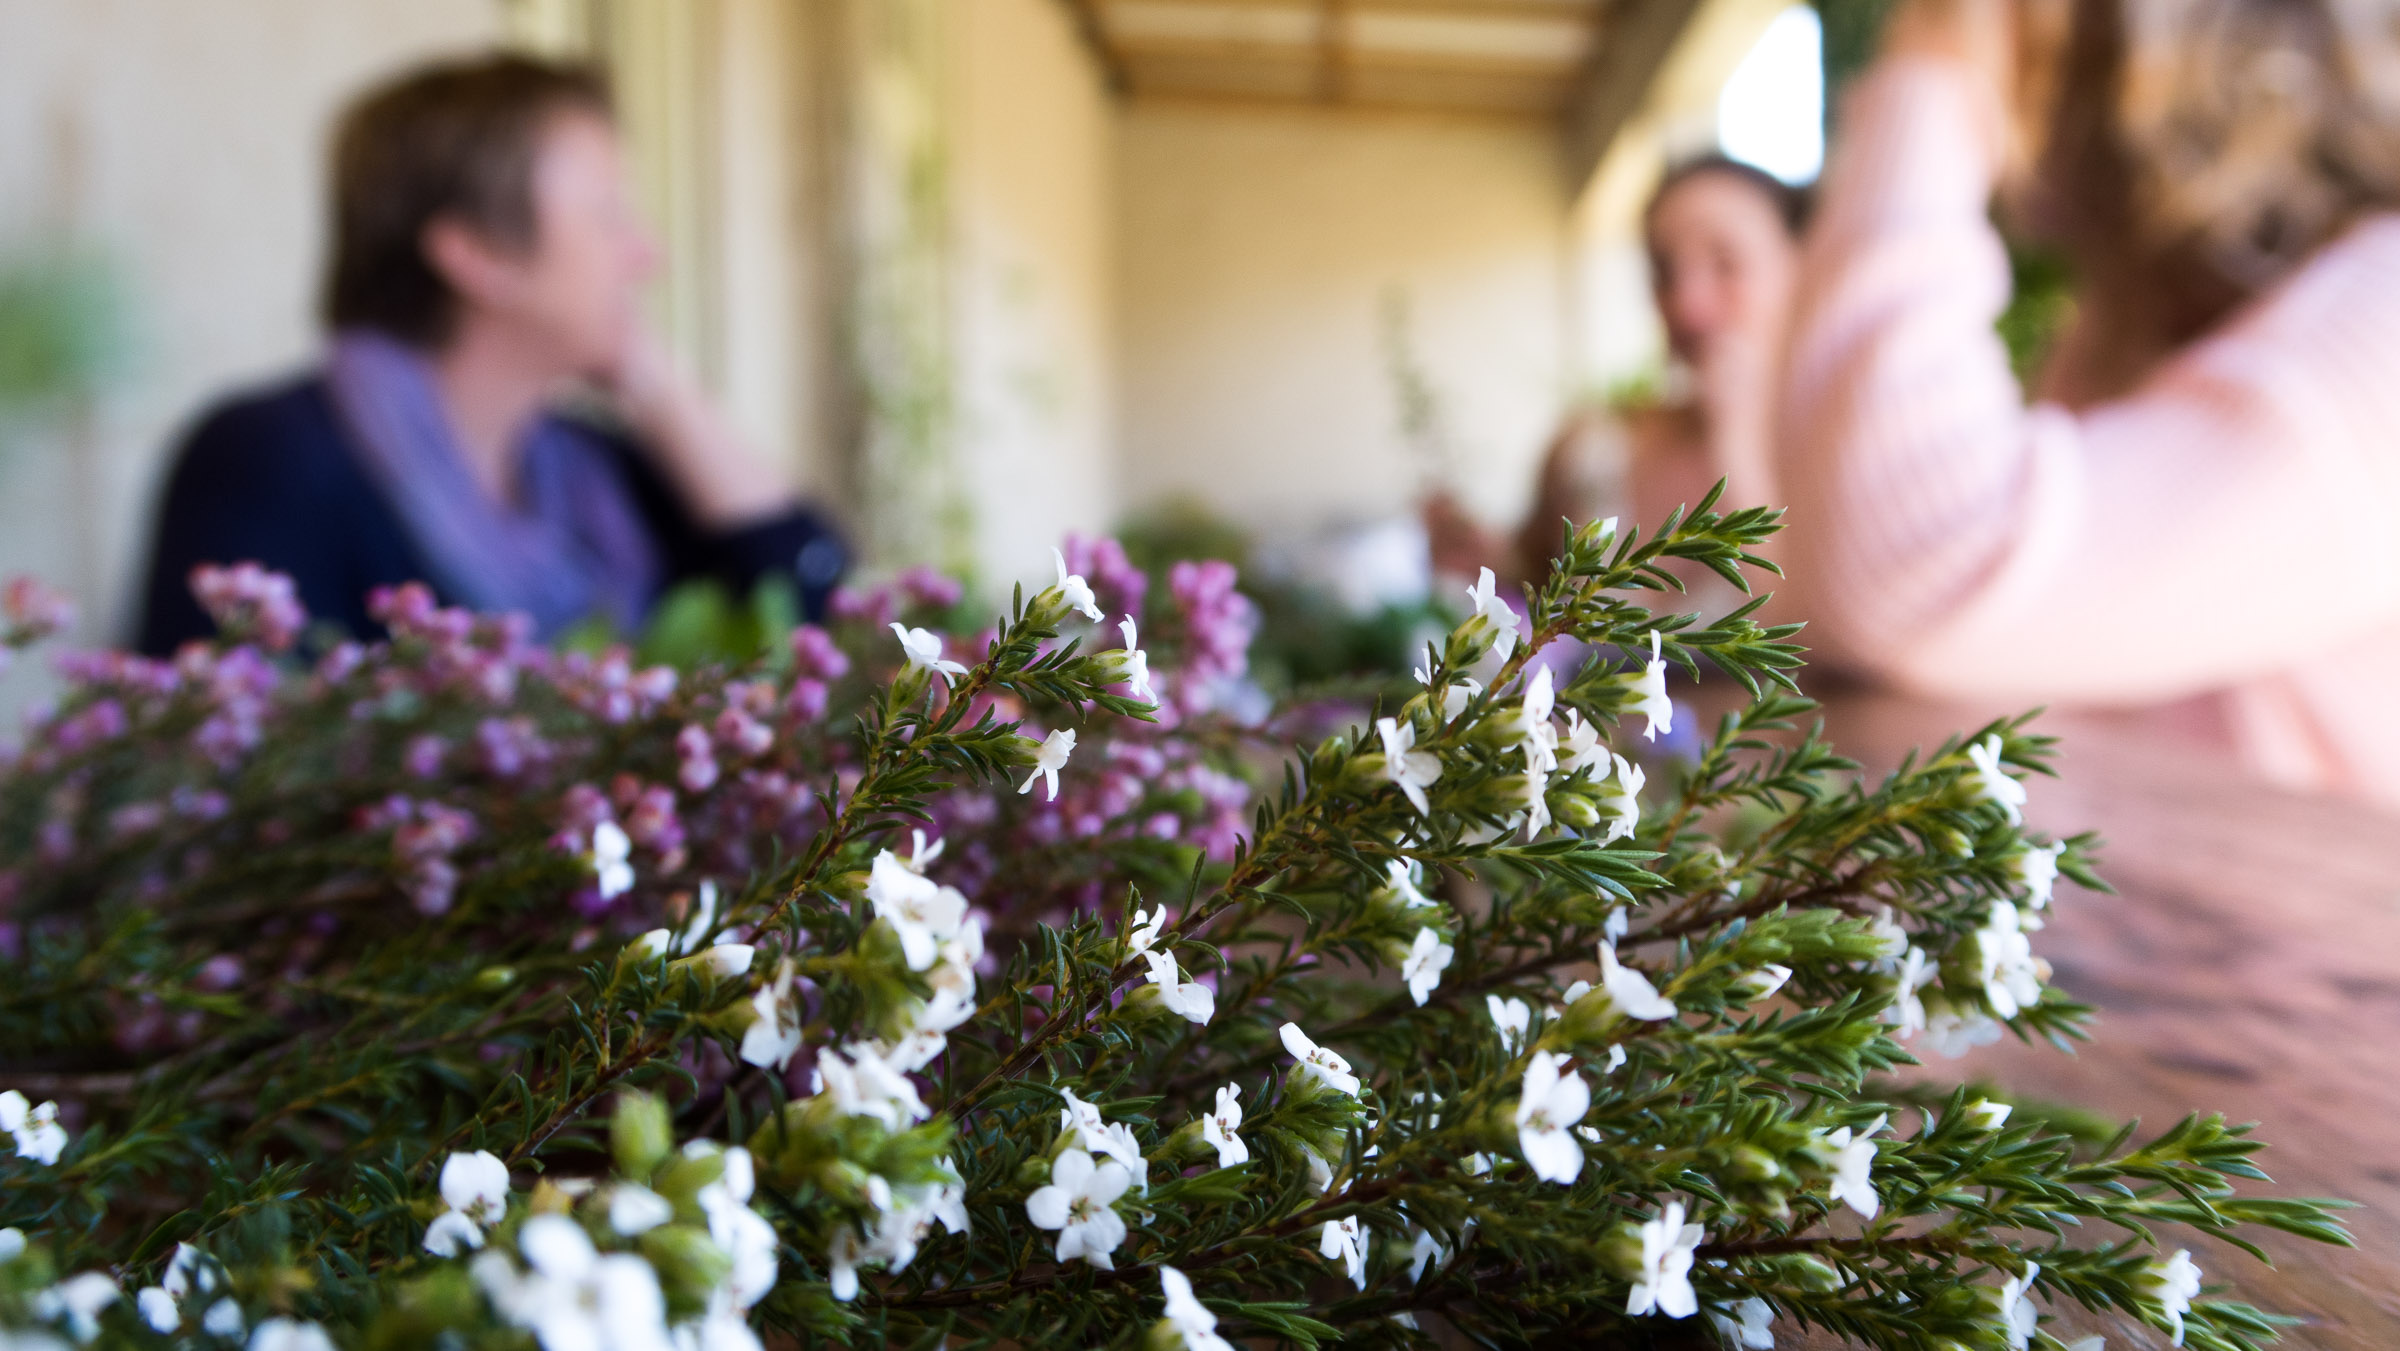 Wild-Love-Experience-retreat-guinevere-guest-farm-carly-south-africa-002.jpg